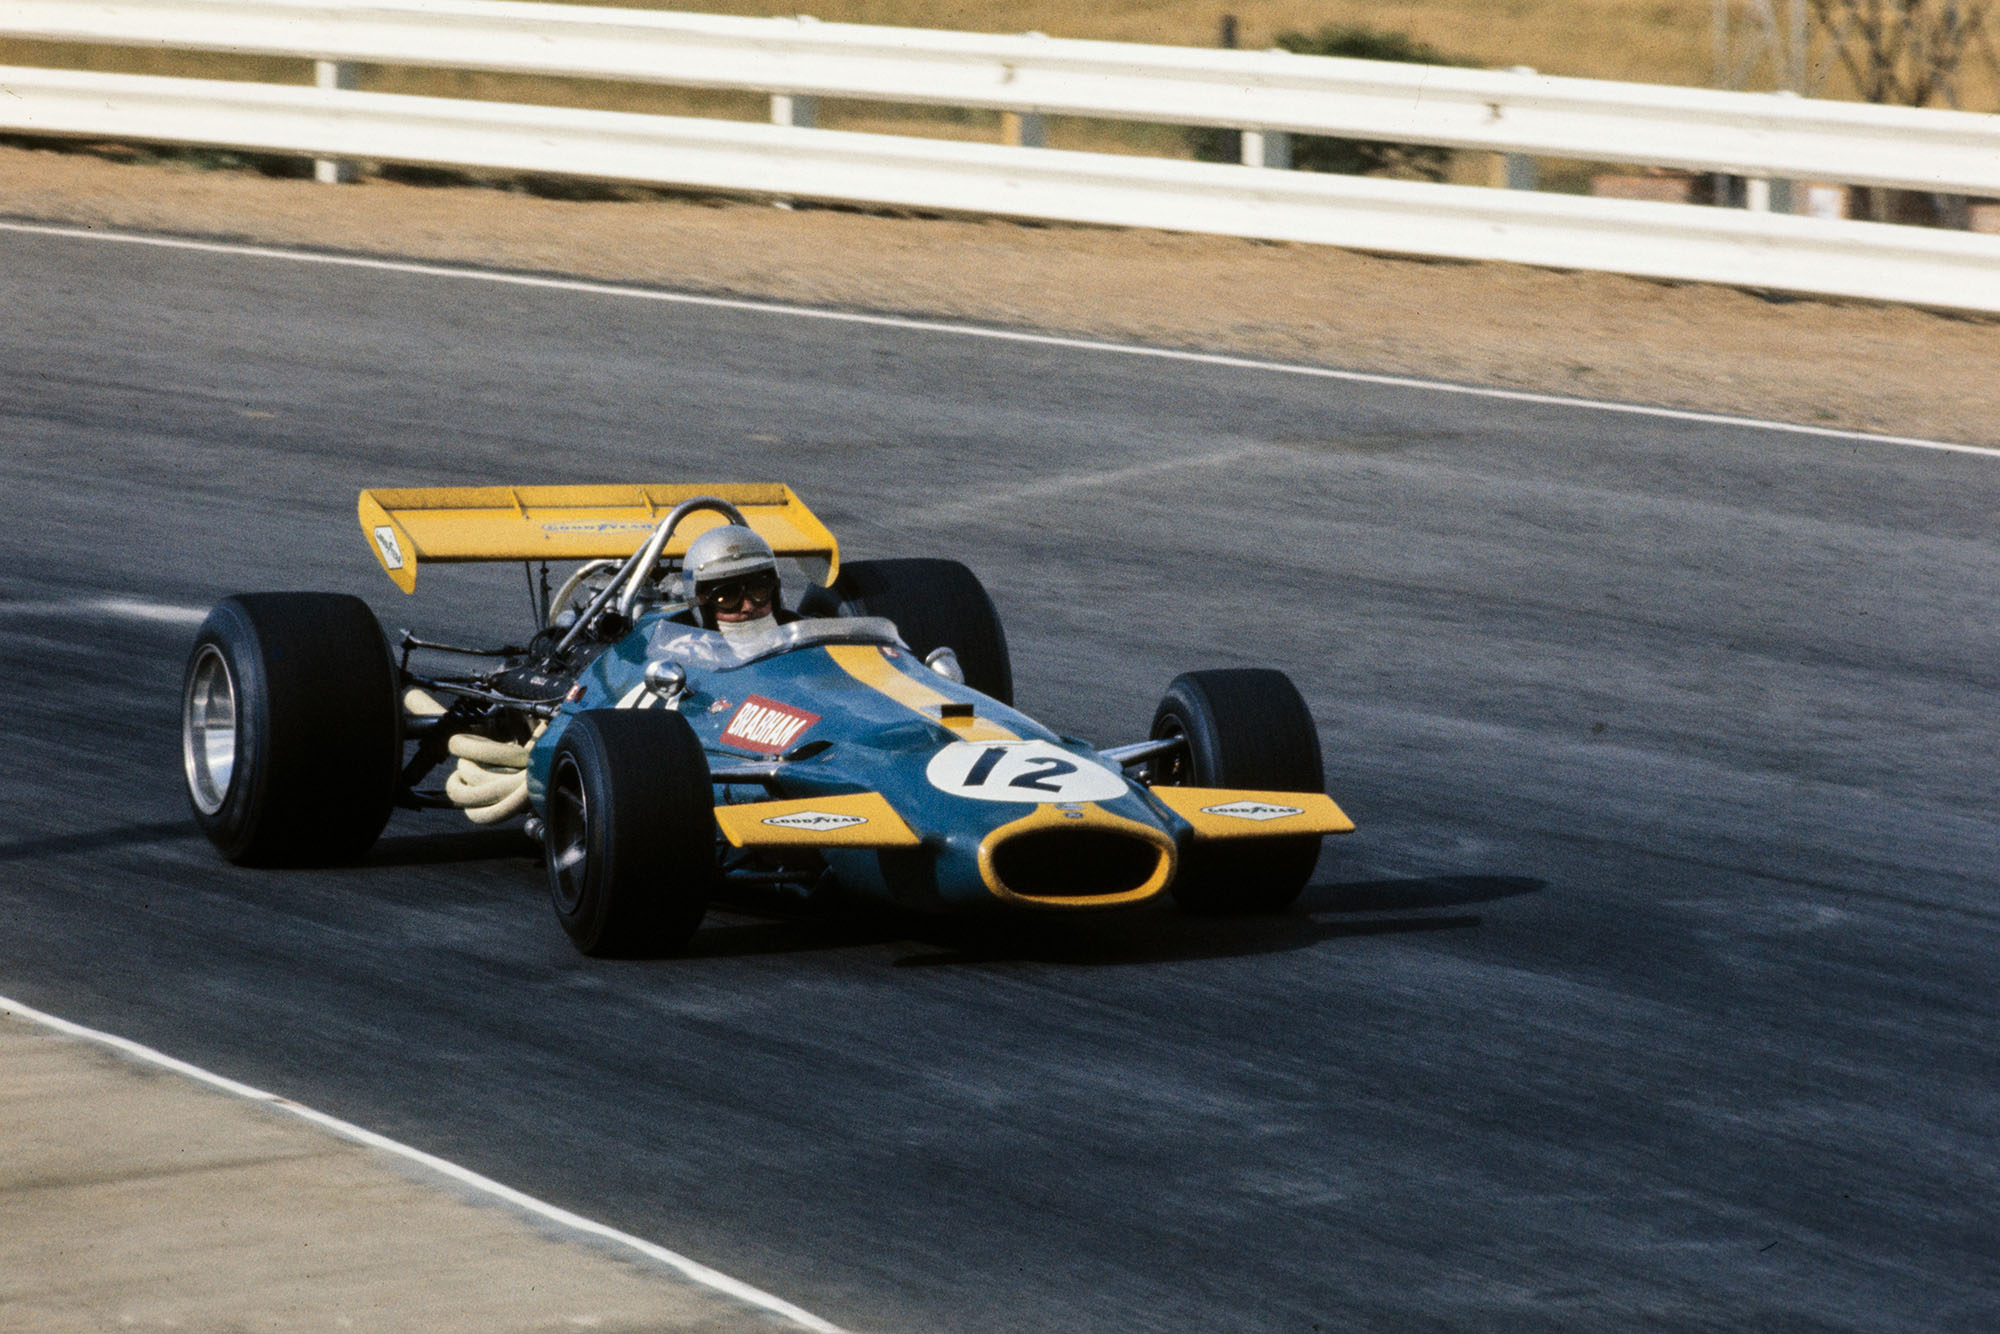 Jack Brabham driving for his own Brabham team at the 1969 South African Grand Prix.